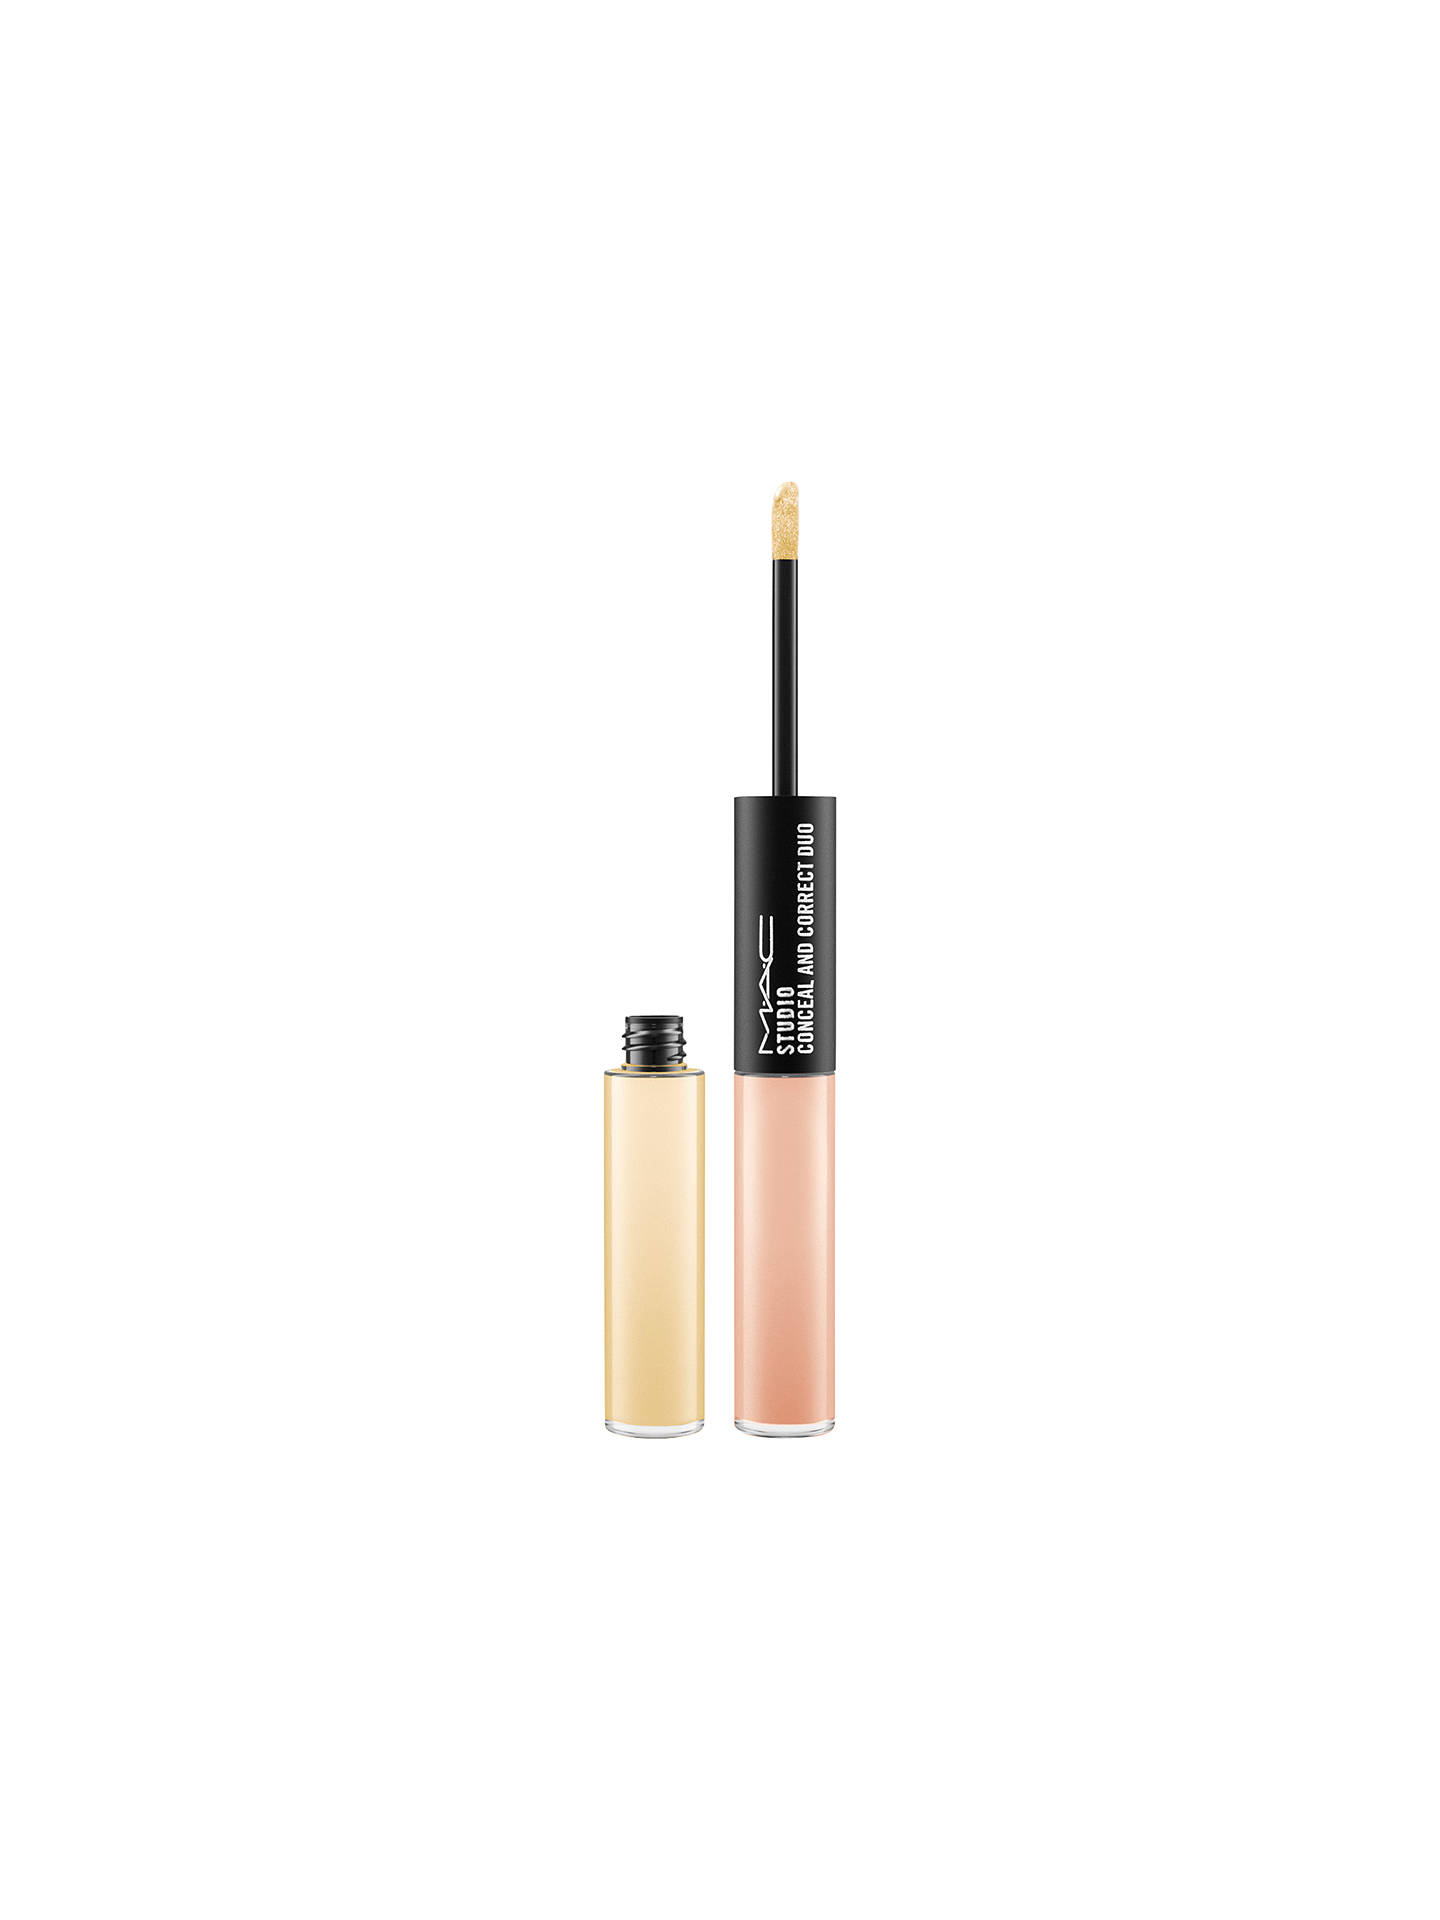 BuyMAC Studio Conceal and Correct Duo, Mid Peach / Mid yellow Online at johnlewis.com